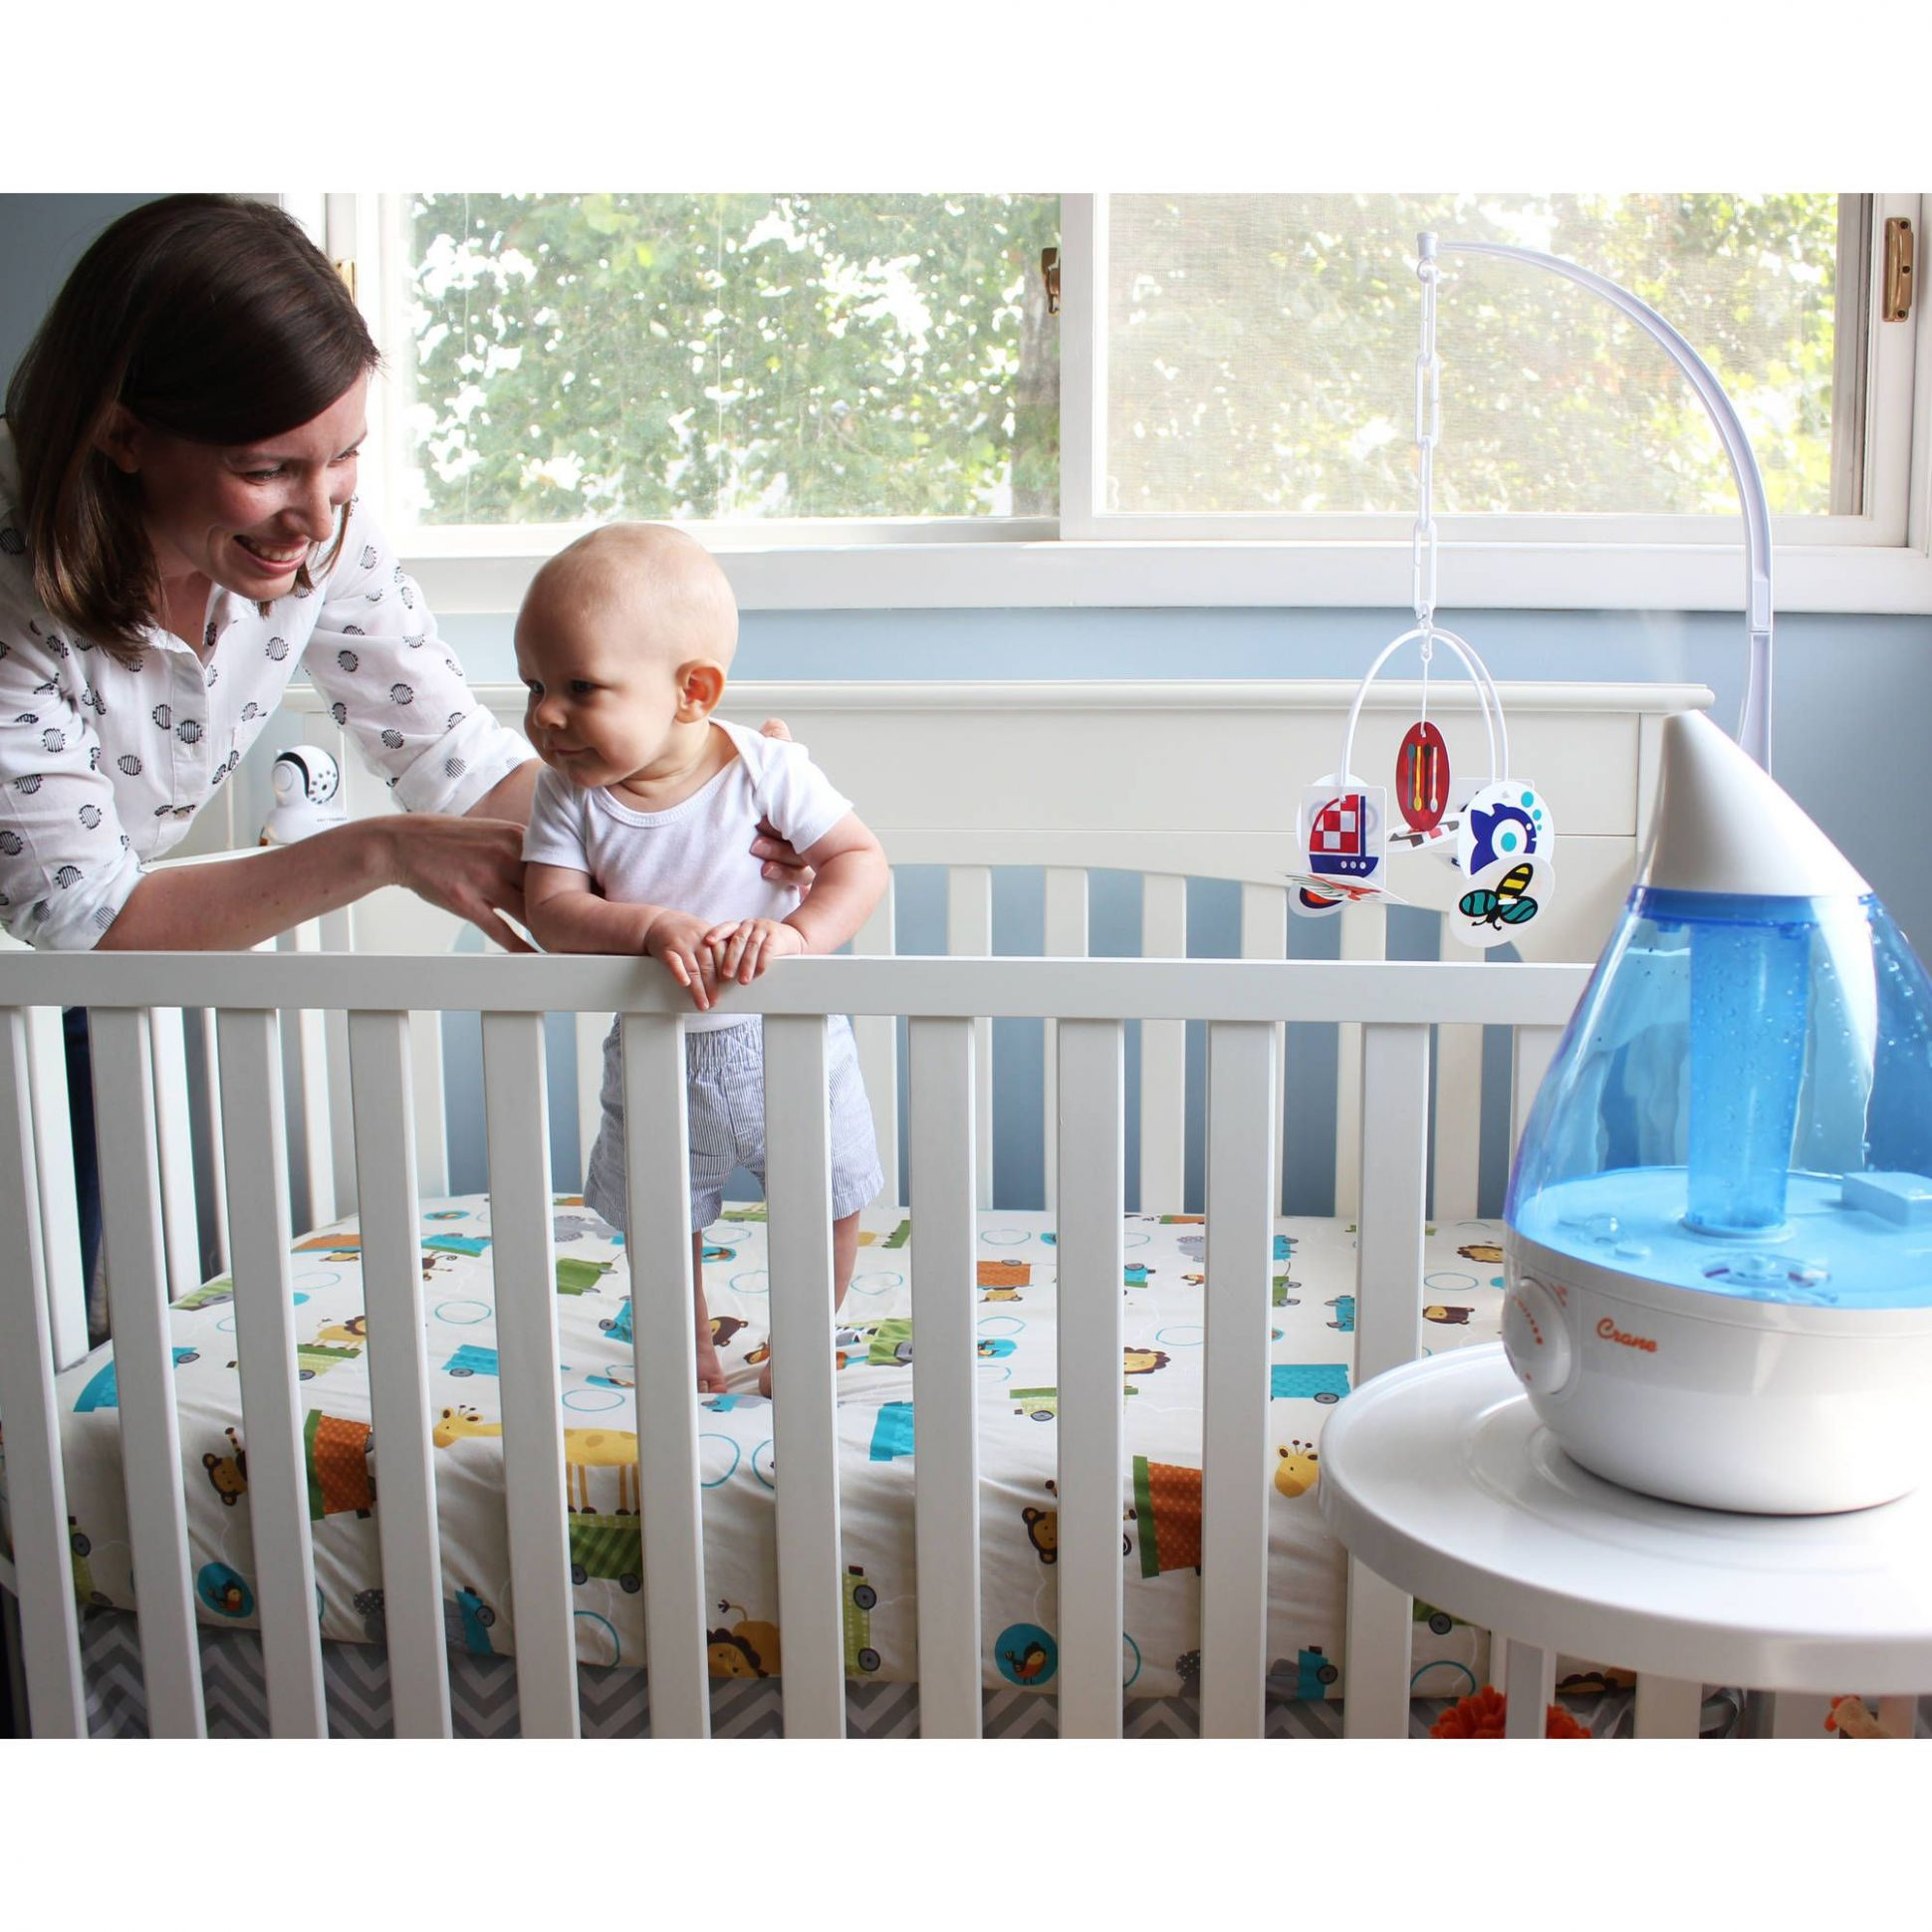 The 10 Best Humidifiers for Babies of 10 - baby room vaporizer